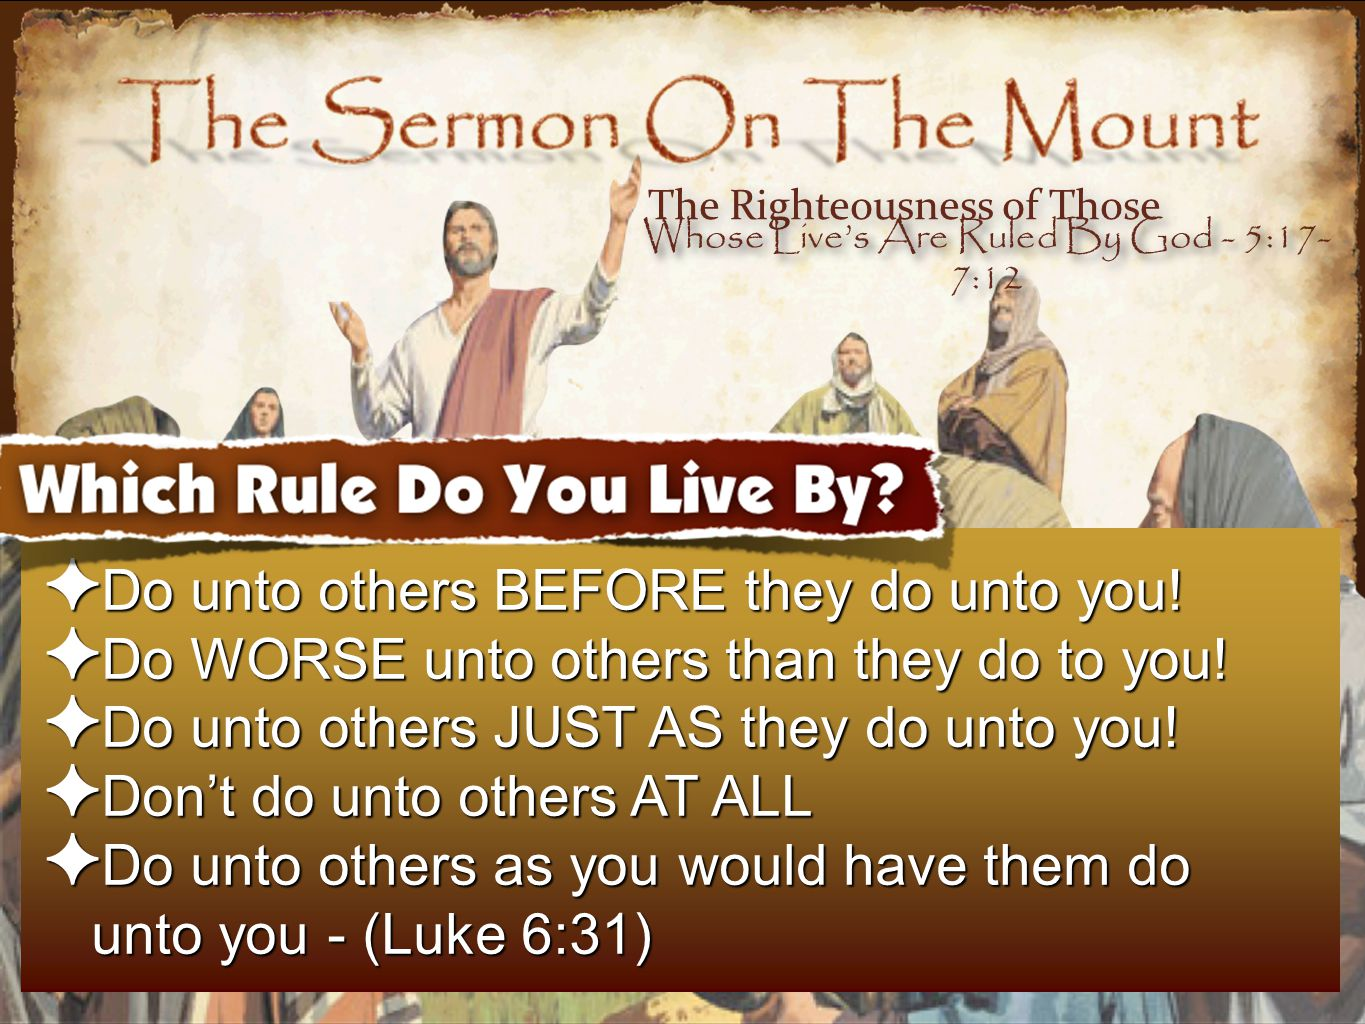 3434 The Kingdom Citizen & The Extra Mile - ✴ How we should respond to those who have authority over us - even if they abuse their power - (1 Pet 2:18-21; also see Acts 5:29) ✴ The characteristics envisioned here - meekness, long-suffering and patience - (1 Pet 2:20) ✴ Do good - even if doing good is not deserved by the one demanding it.